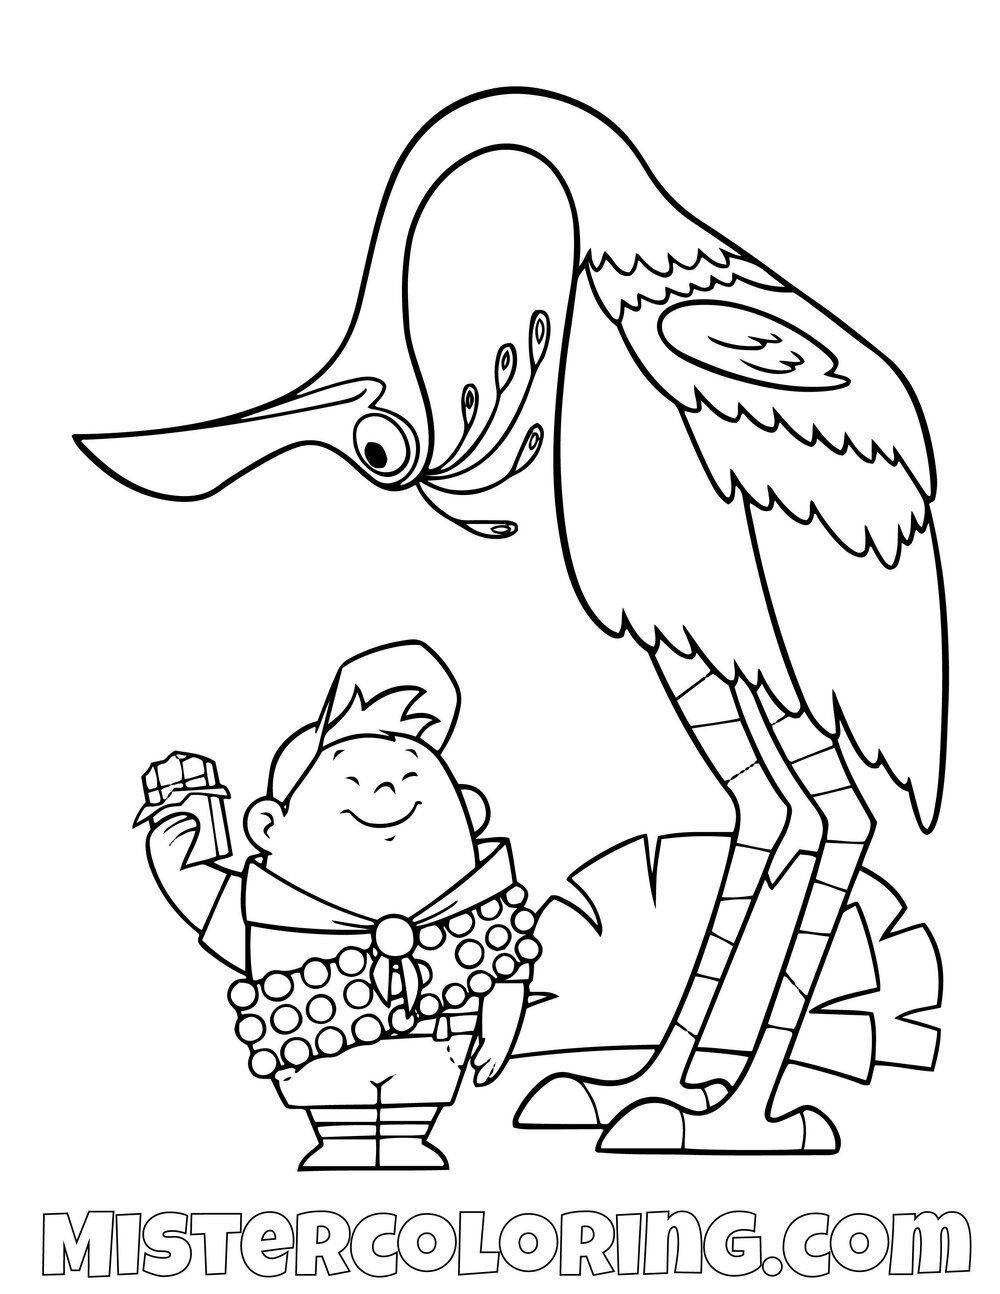 Russell And Kevin Standing Disney Pixar Up Movie Coloring Pages For Kids Bird Coloring Pages Coloring Pages Disney Up